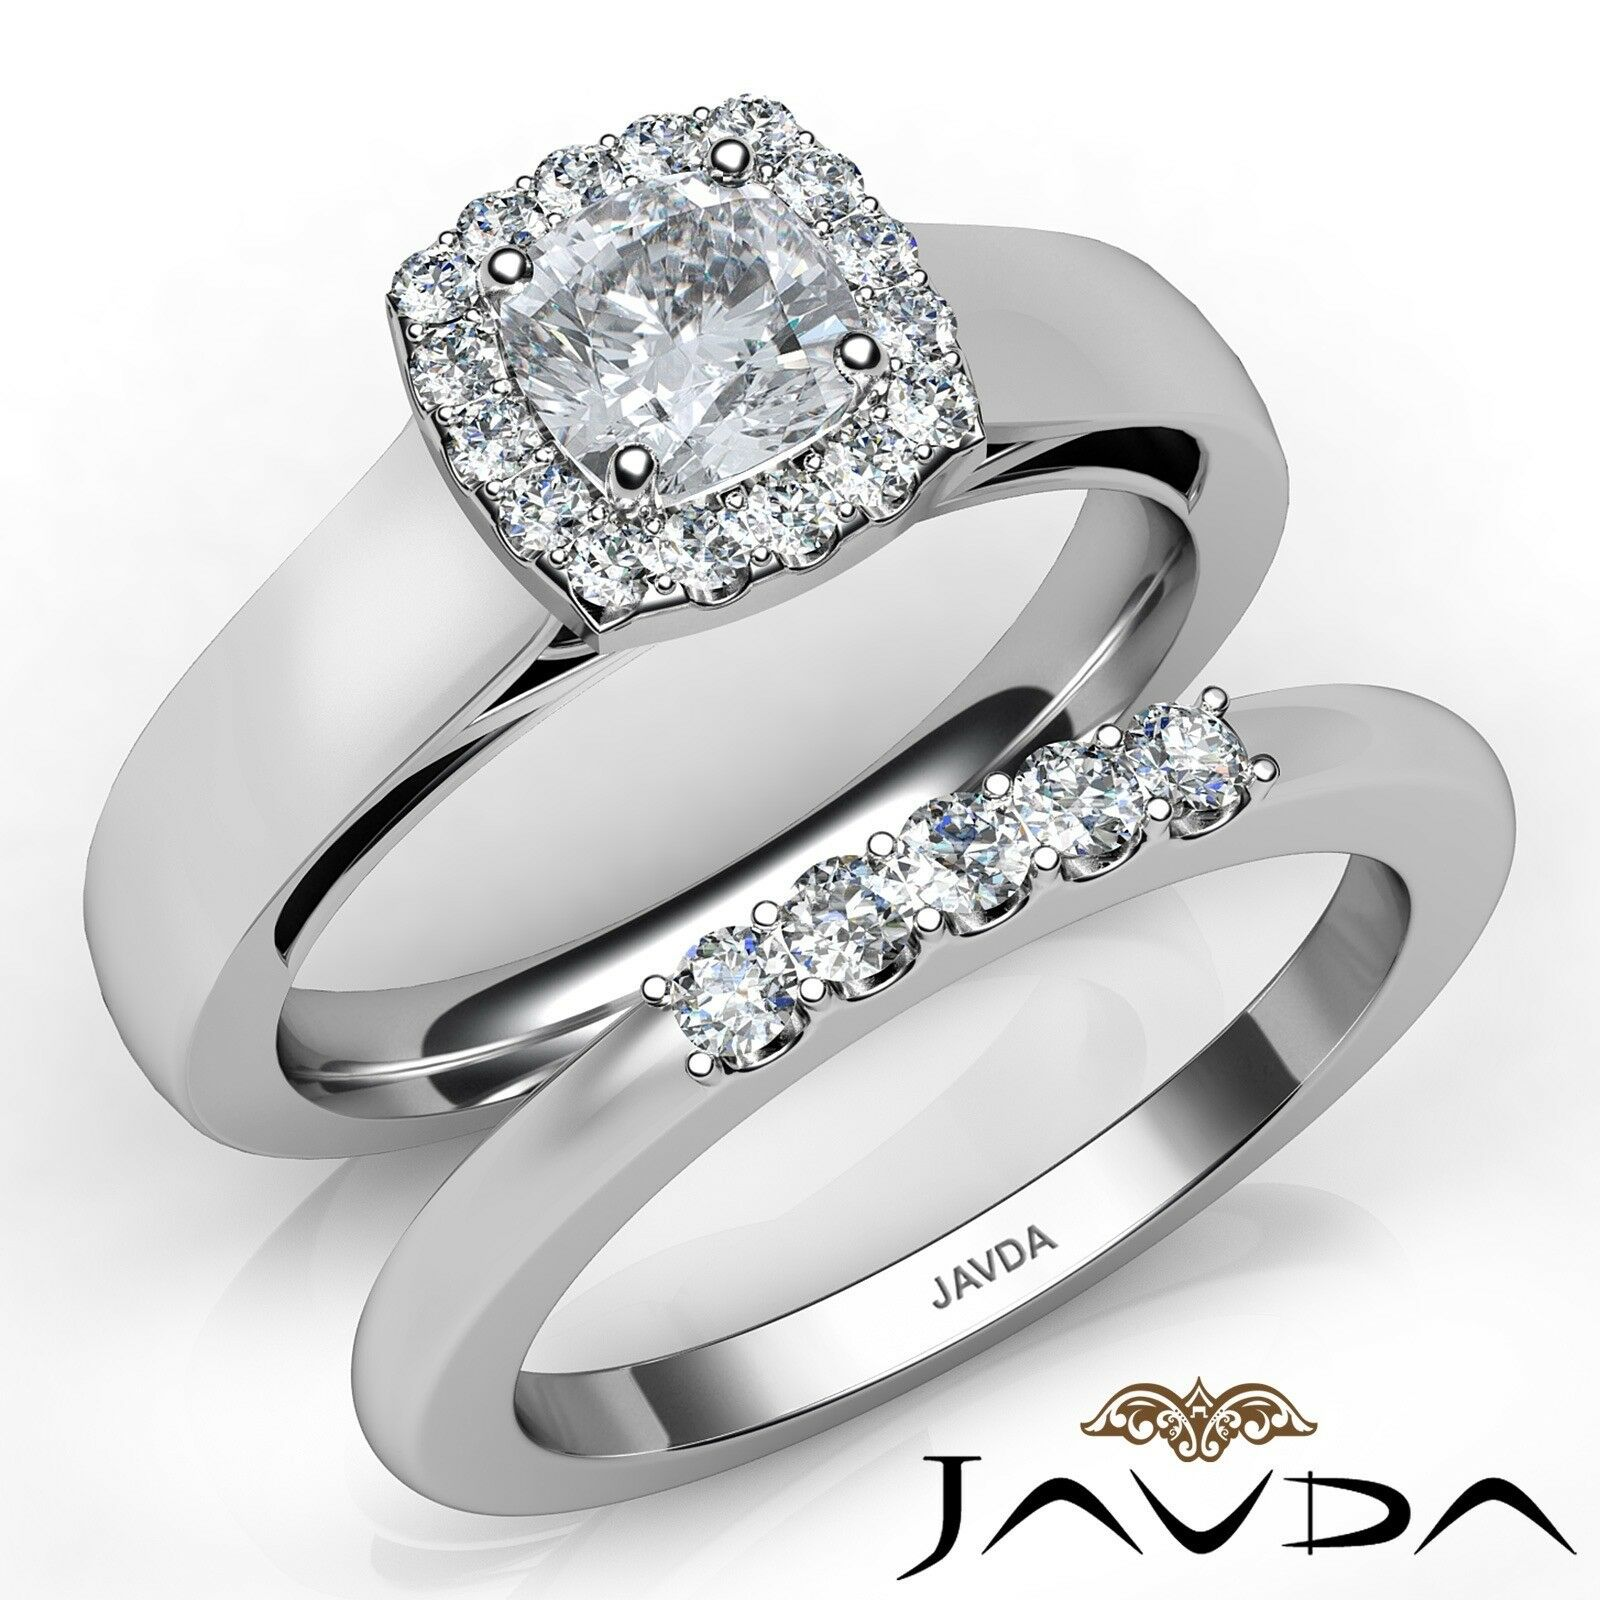 1.04ctw Solitaire Halo Bridal Cushion Diamond Engagement Ring GIA H-VS2 W Gold